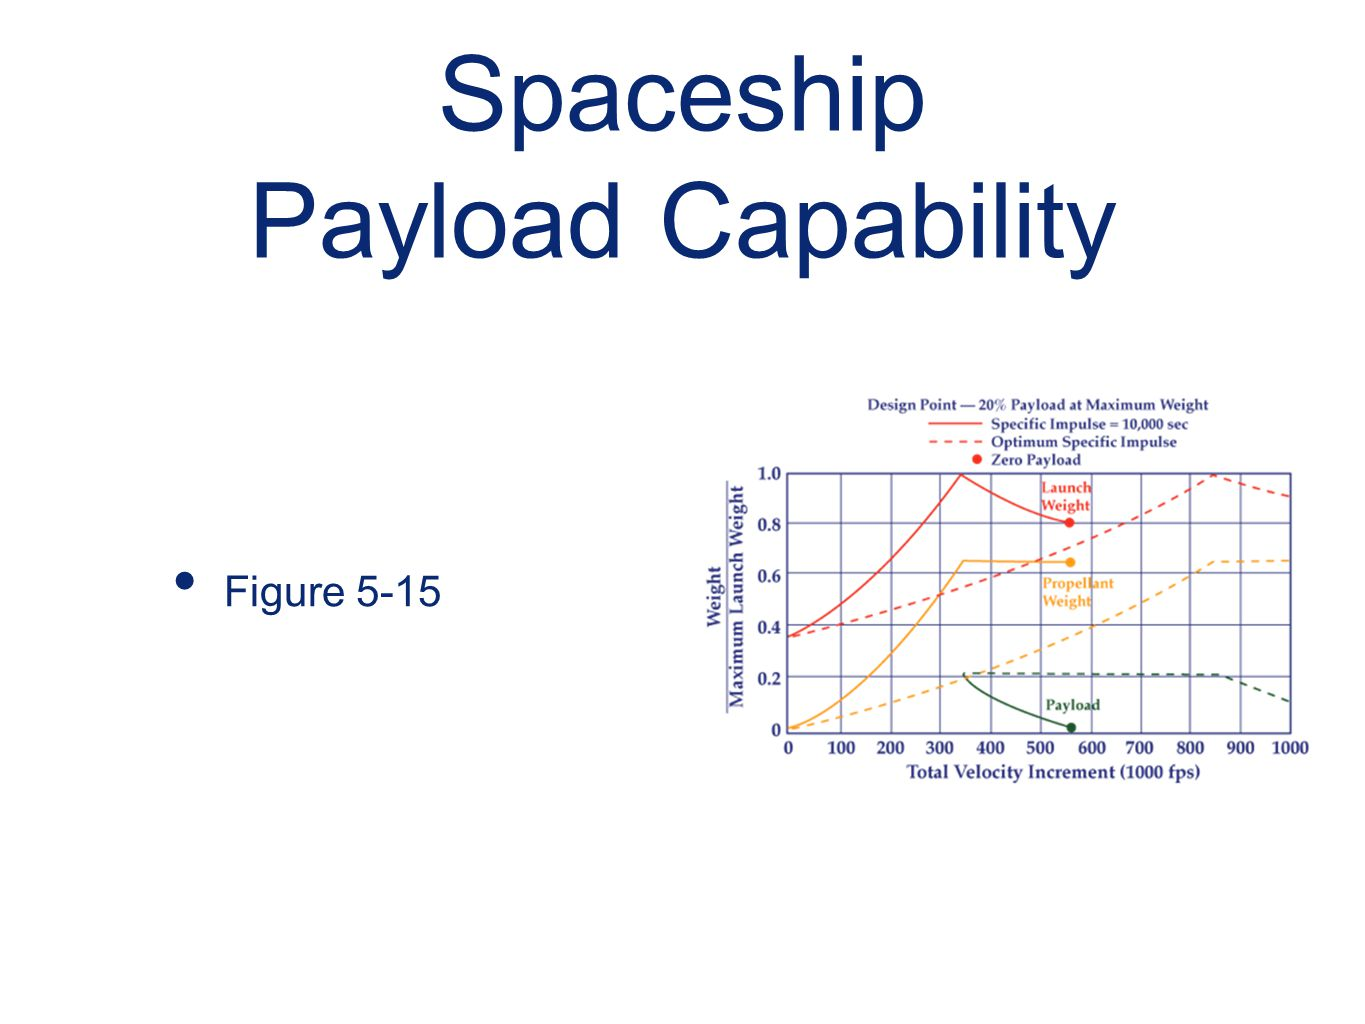 Spaceship Payload Capability